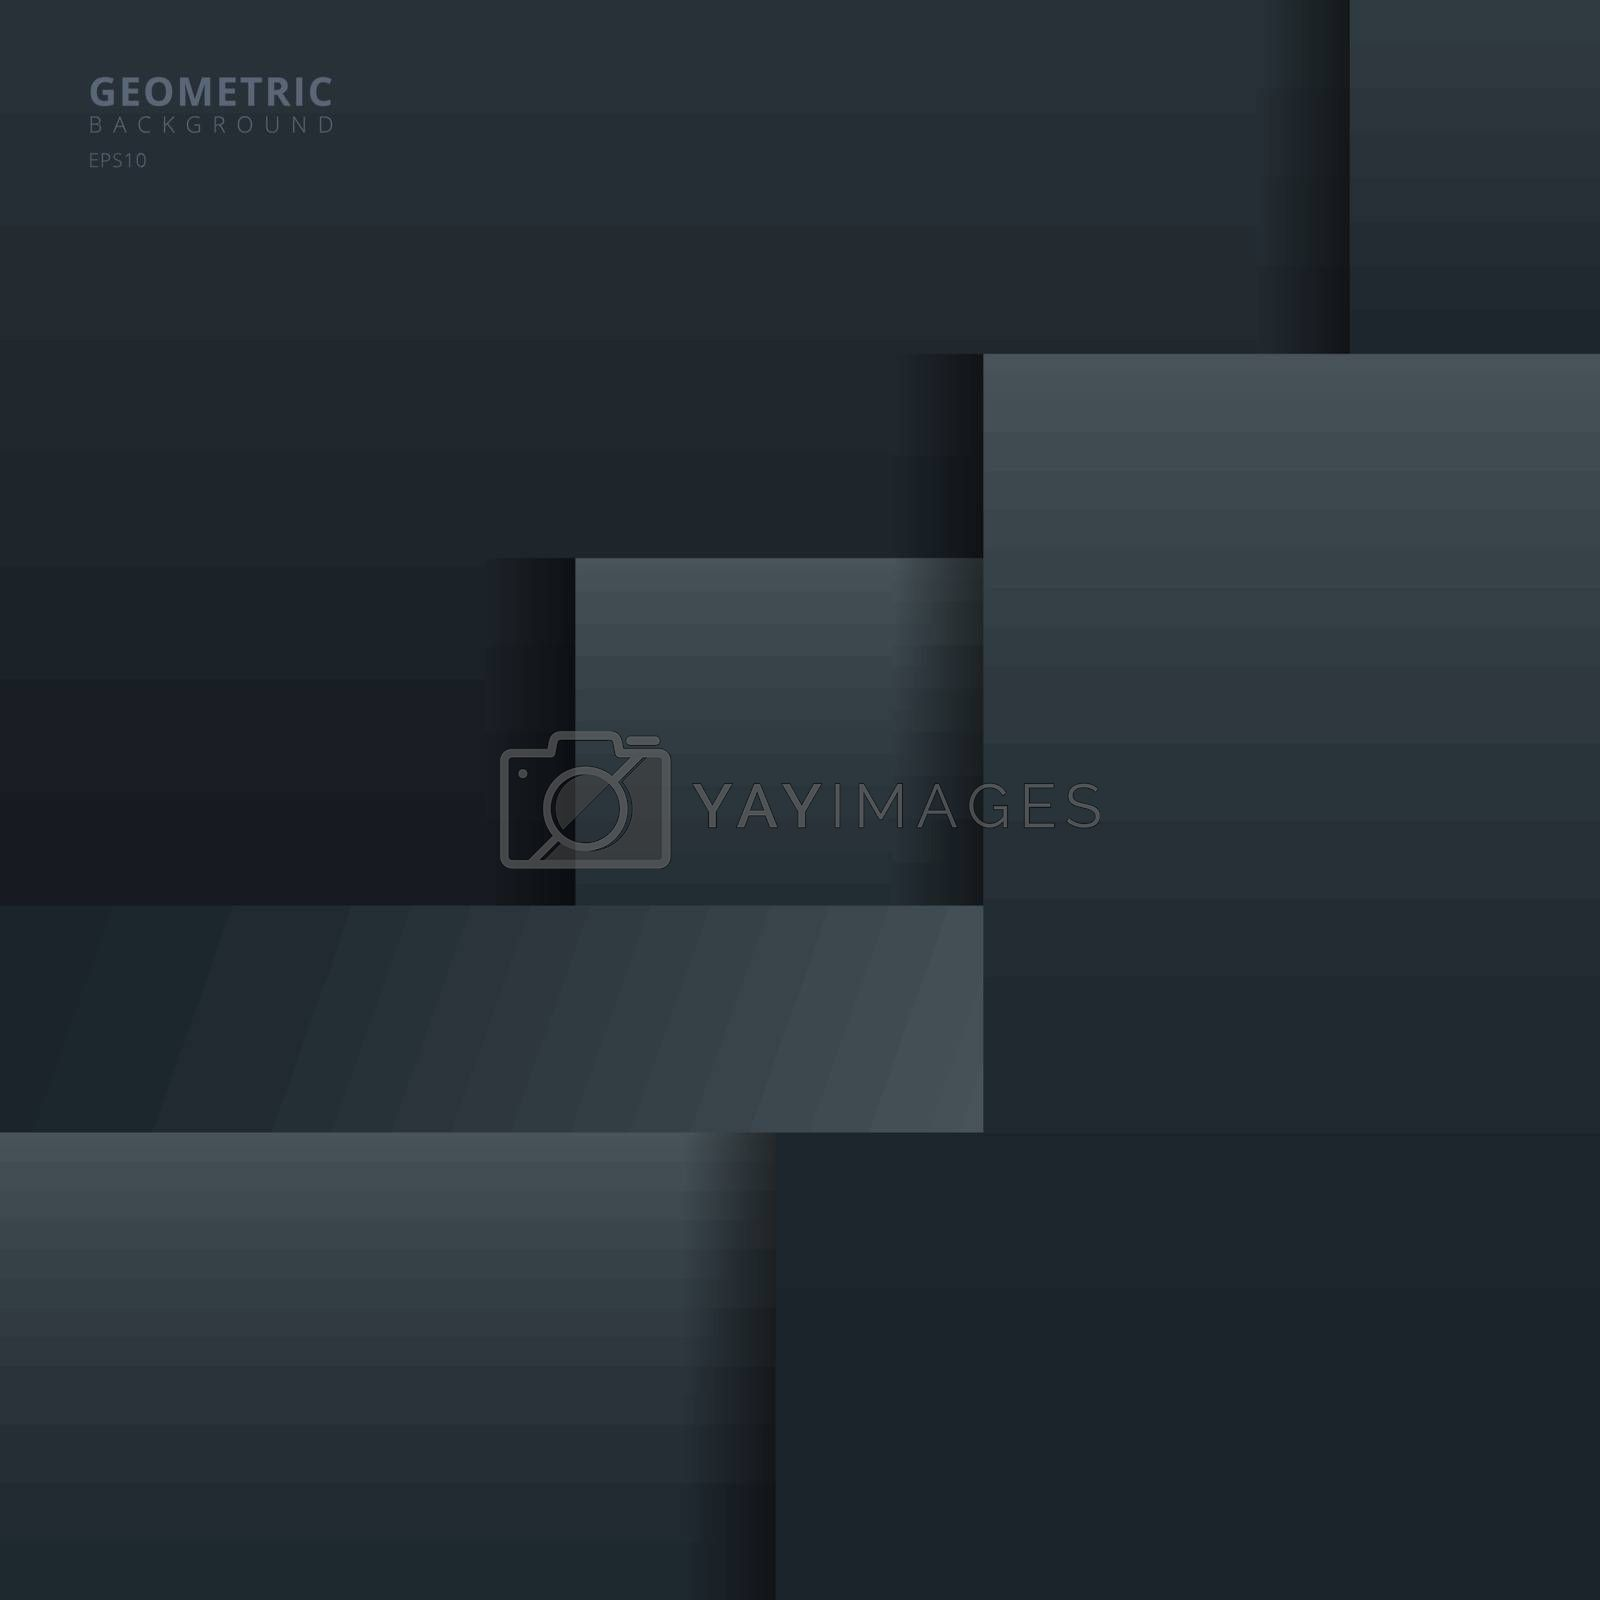 Abstract background black and gray geometric square overlapping with shadow paper style. Vector illustration